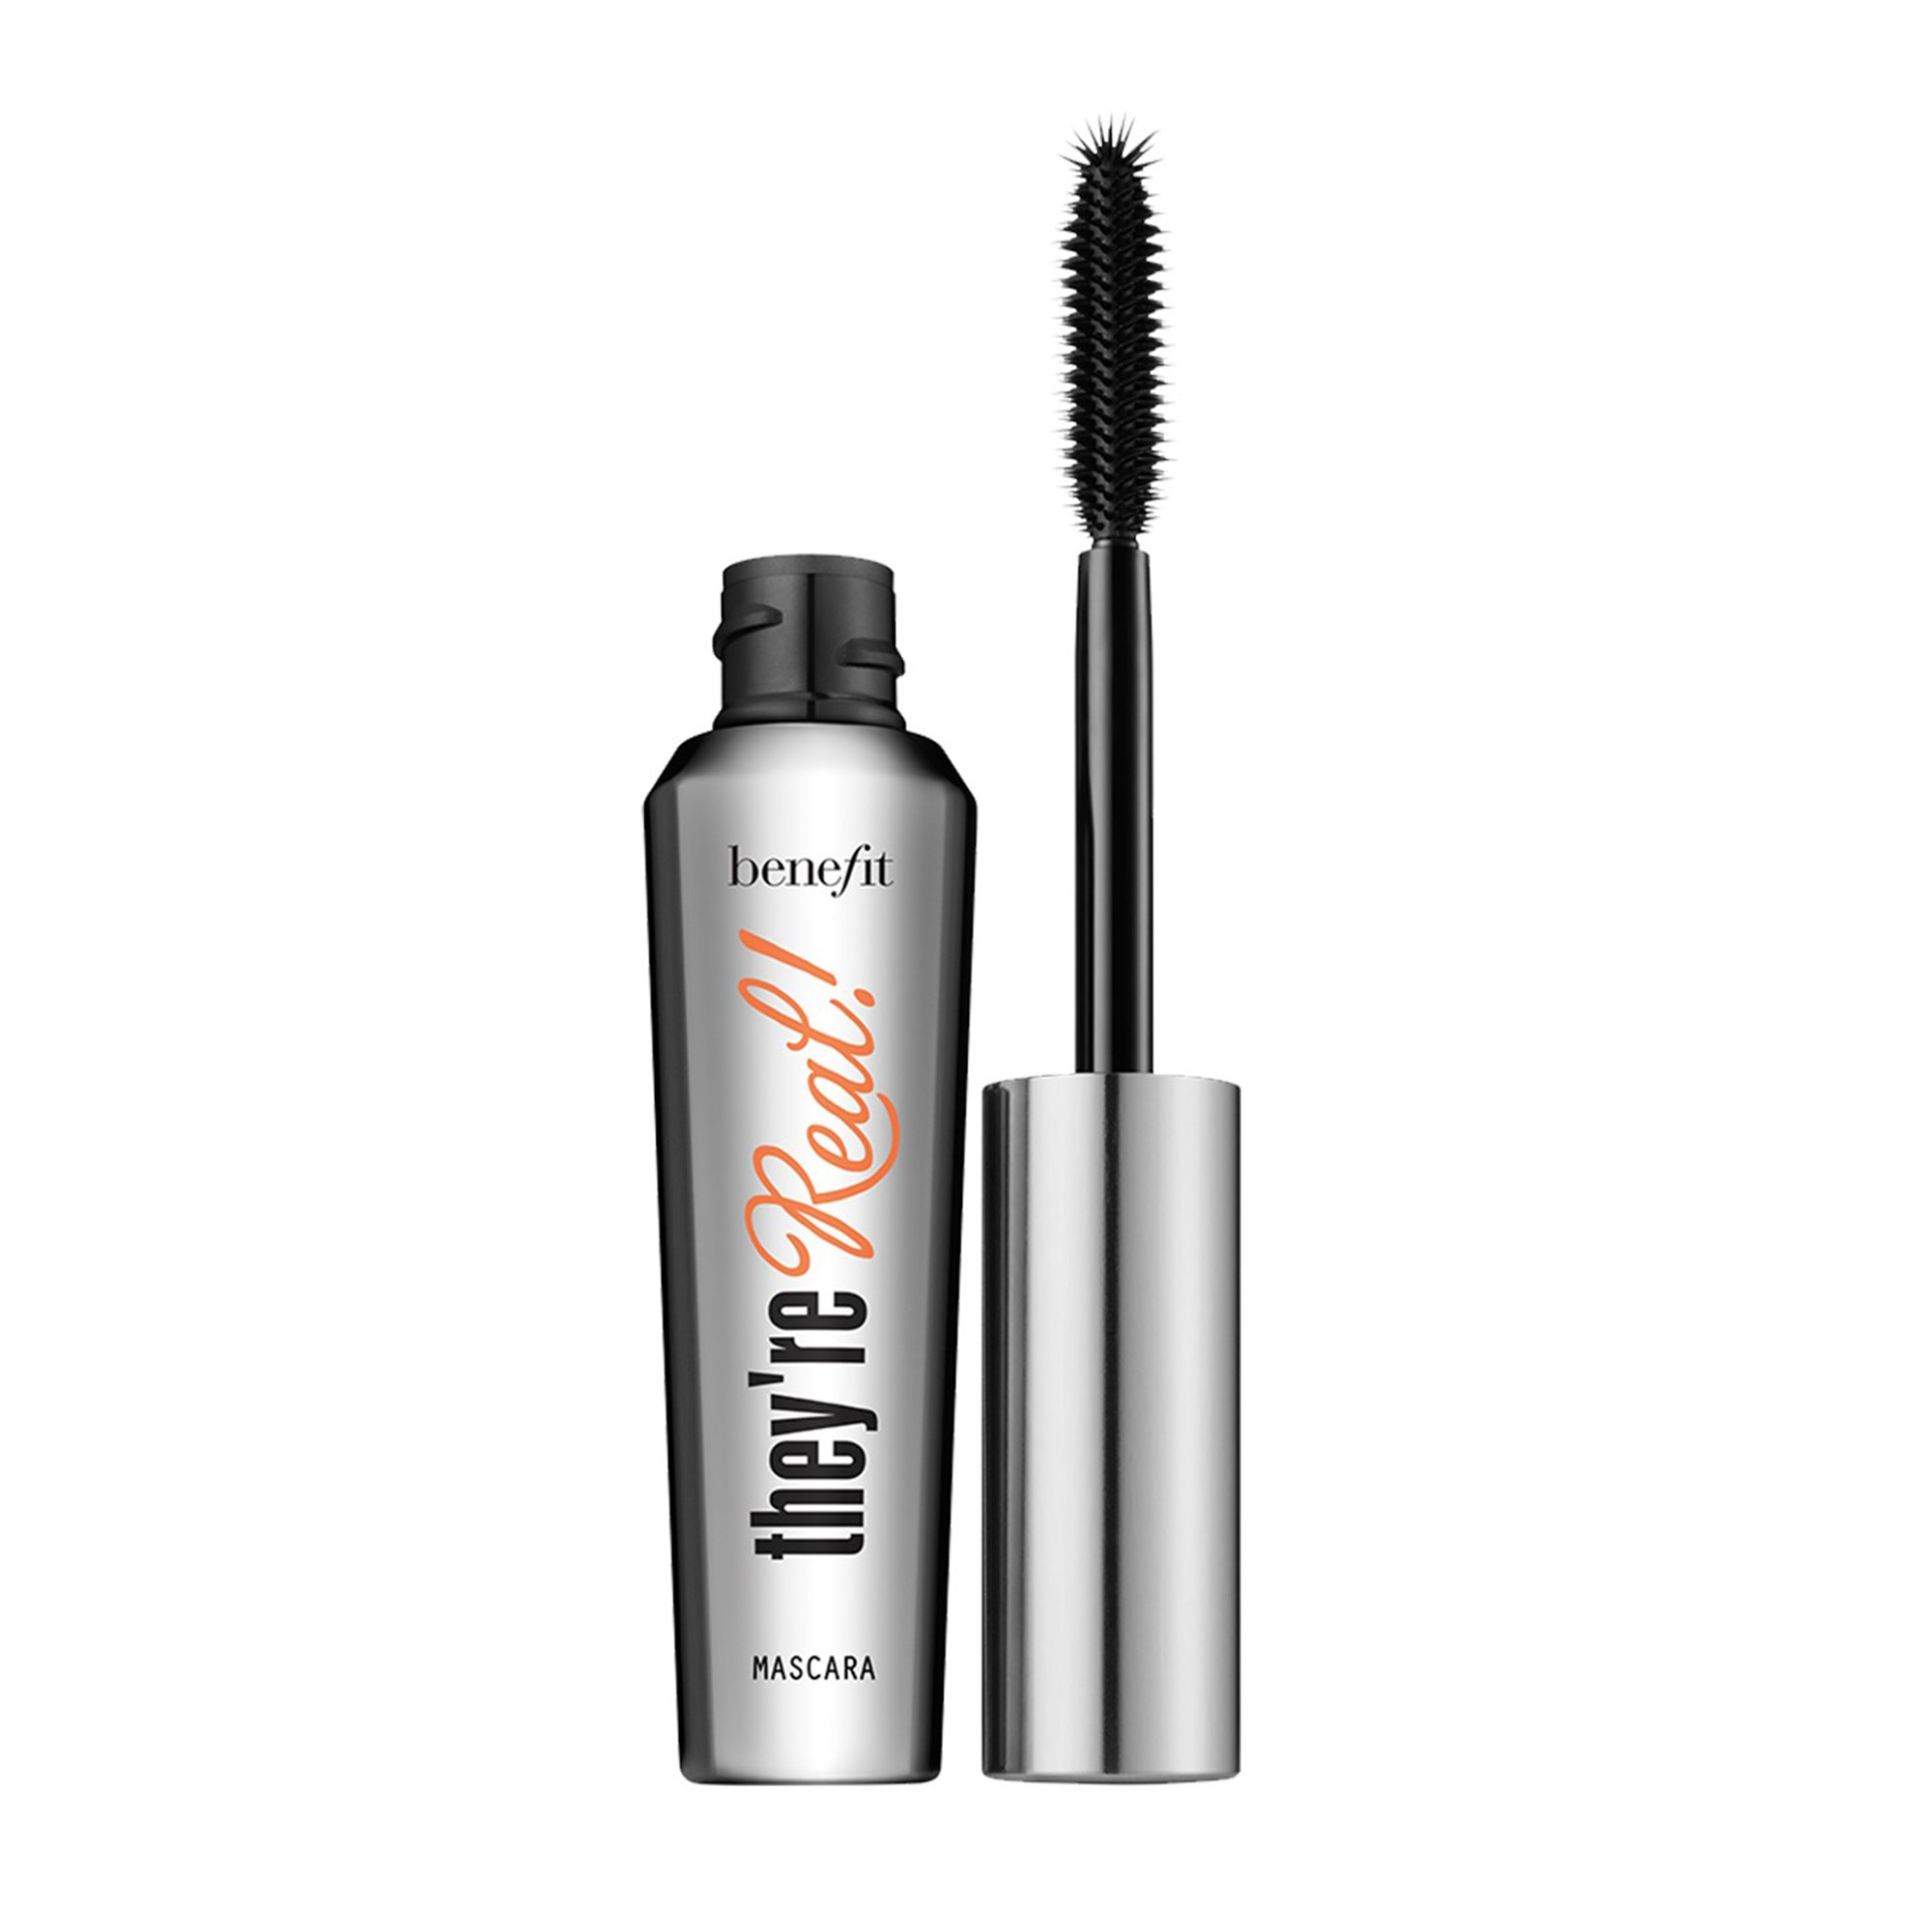 they are real mascara